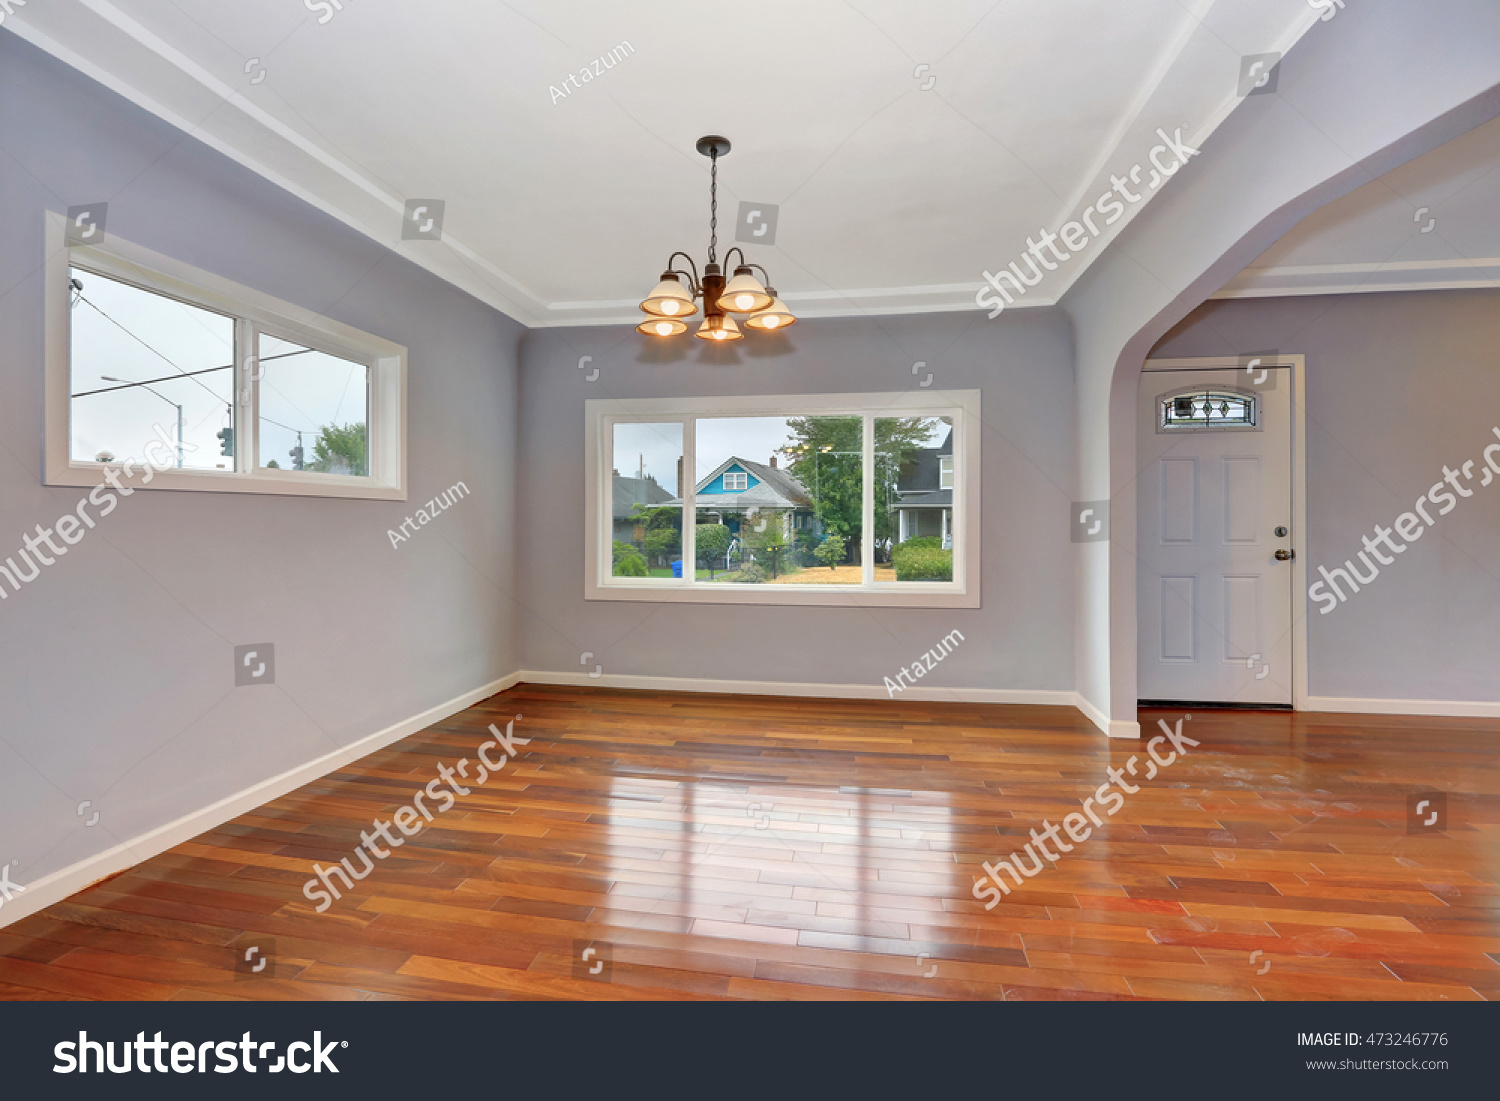 Foyer And Entryways Usa : Empty old house interior entryway hardwood stock photo